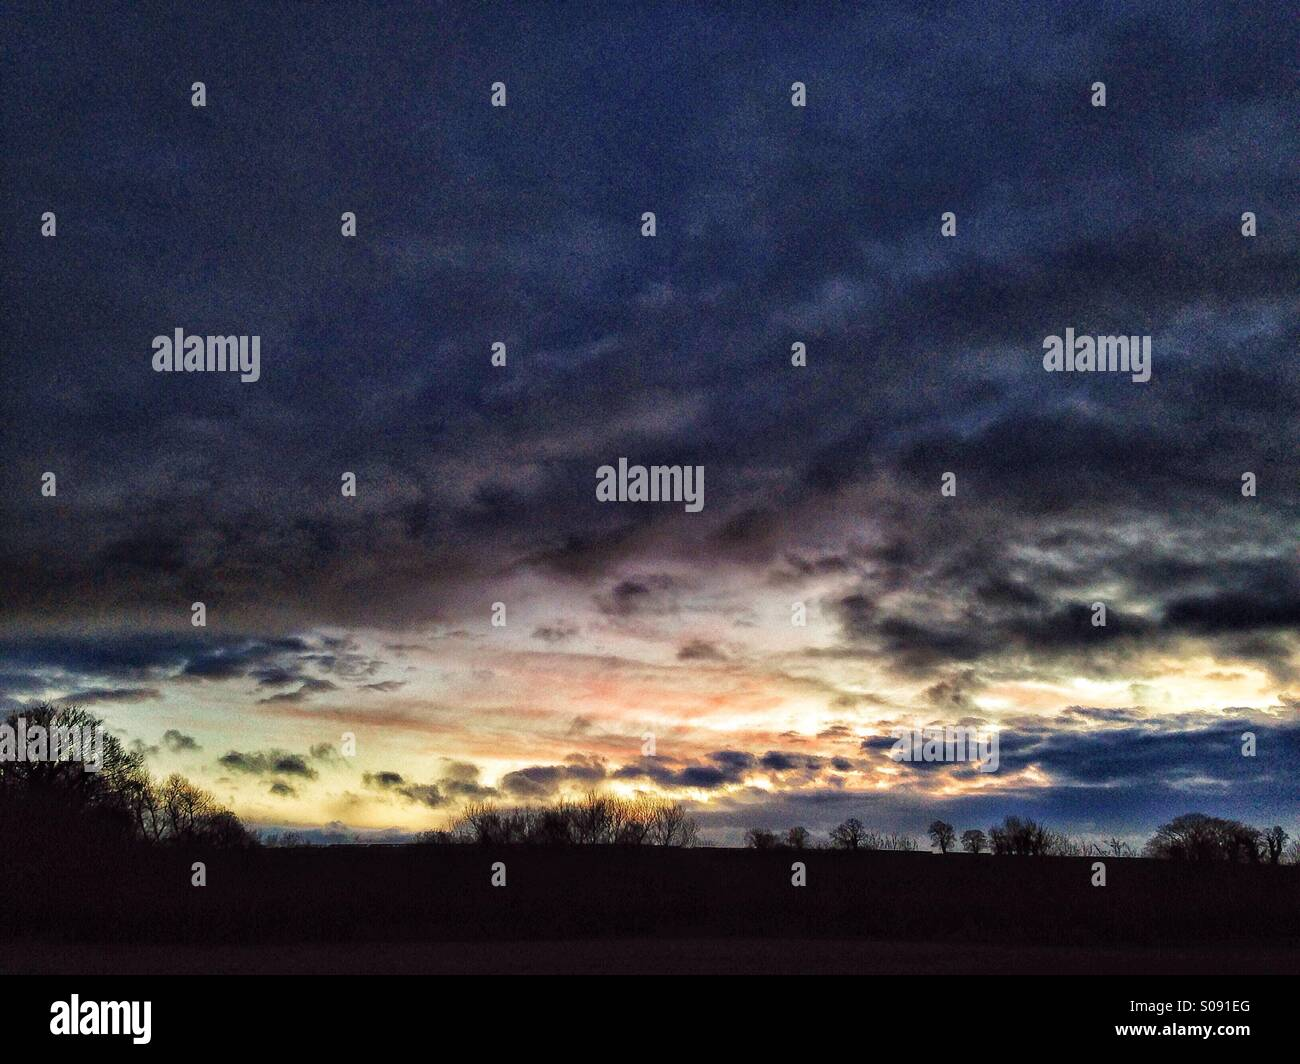 Stormy skyscape at dusk - Stock Image